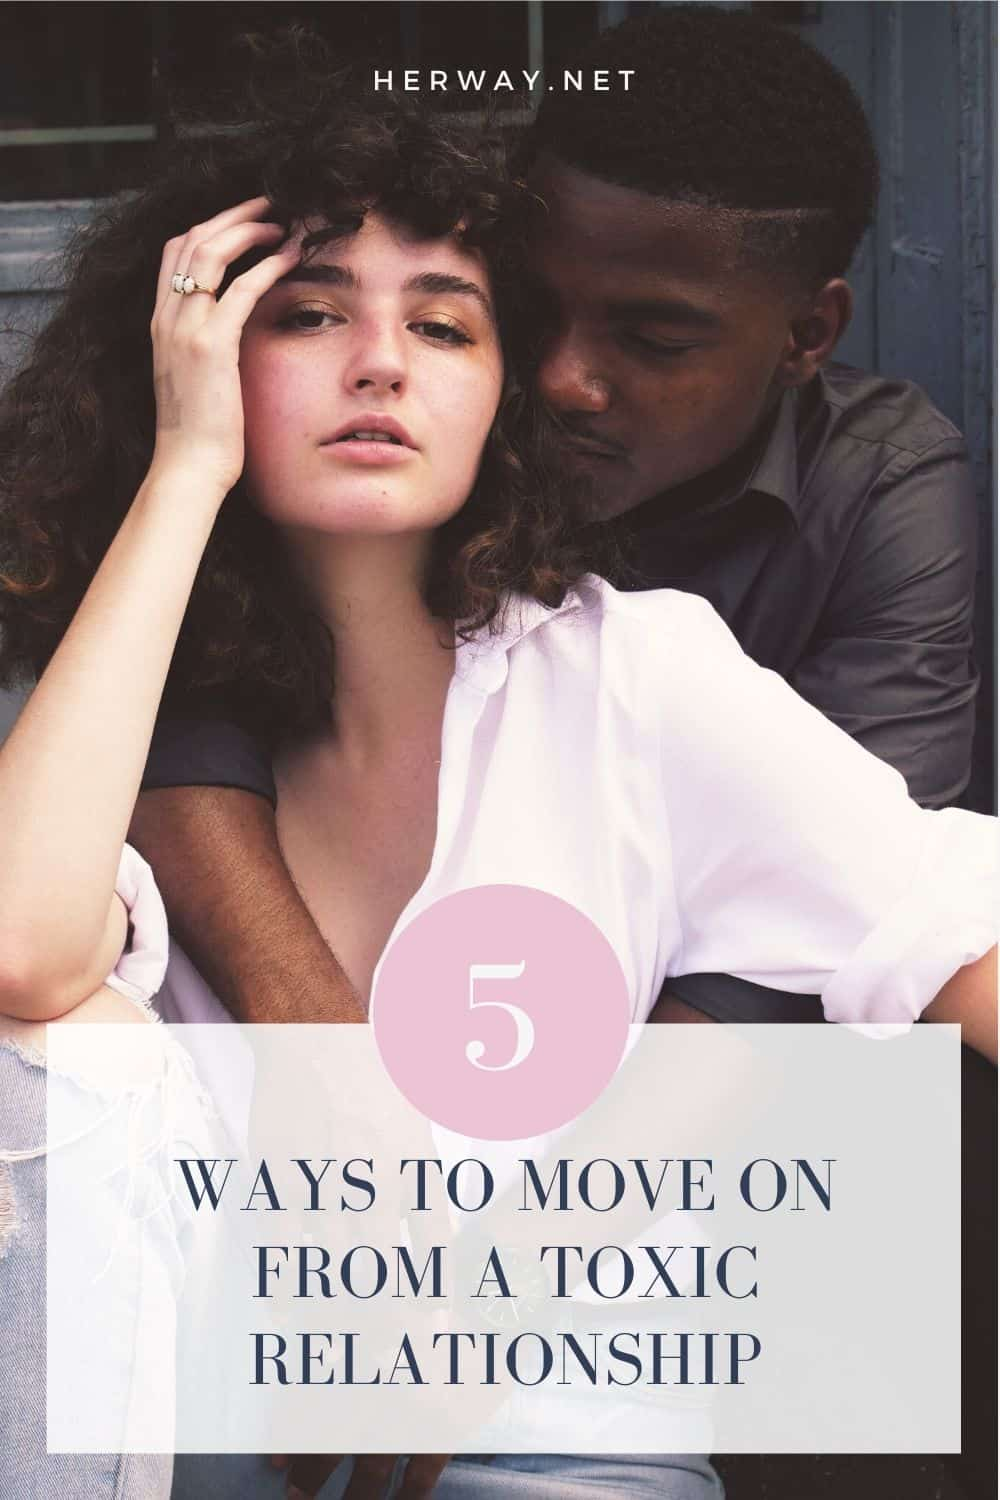 5 Ways To Move On From A Toxic Relationship